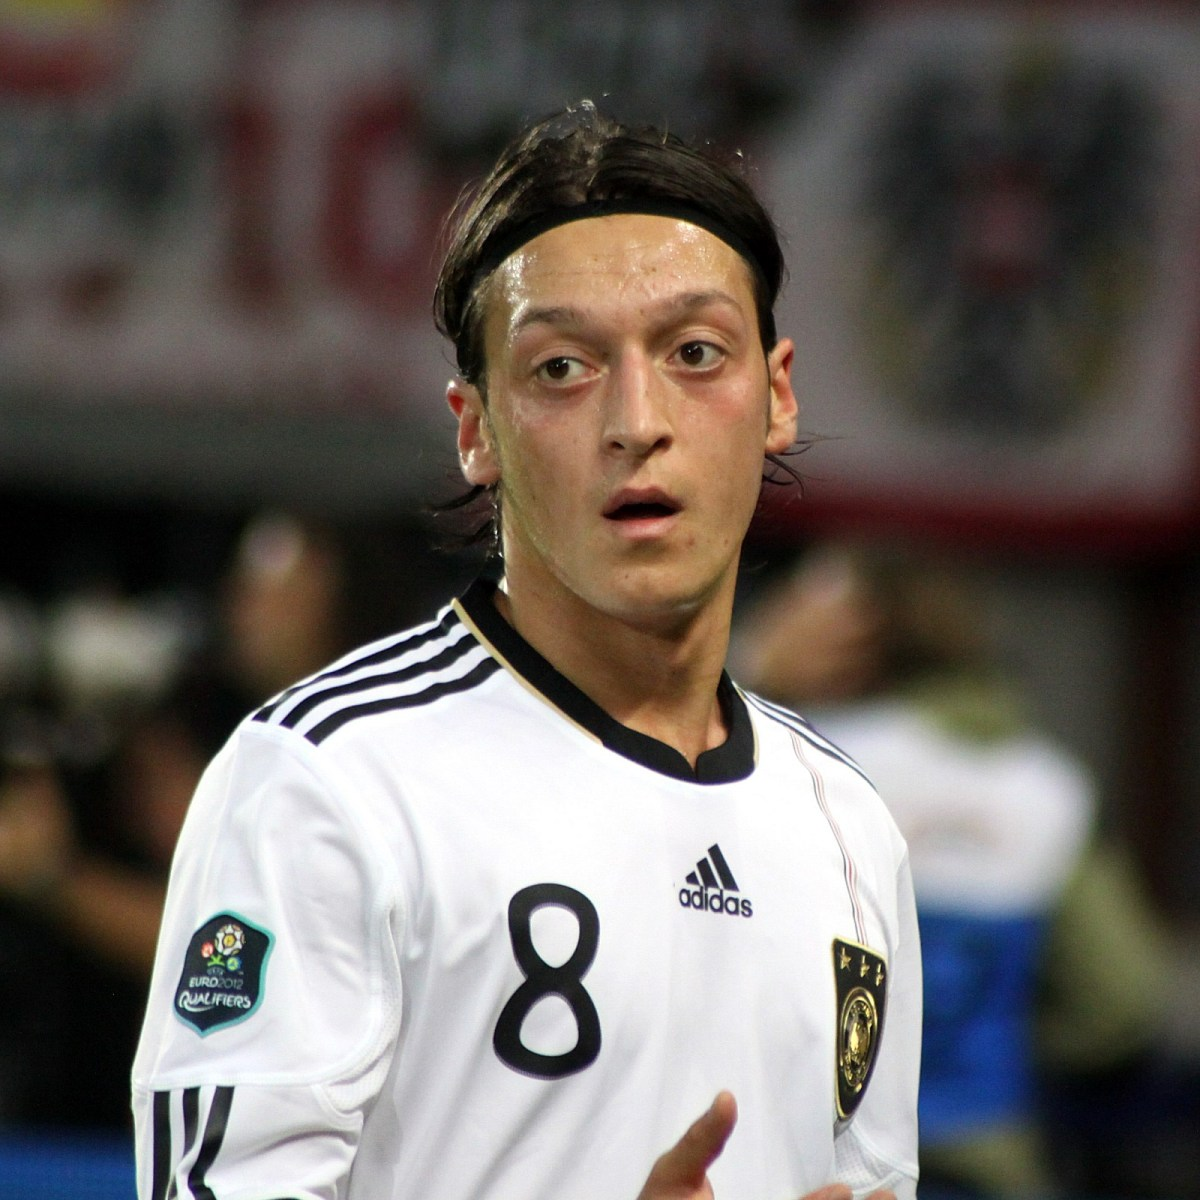 Mesut Ozil Nutmegs Linesman Without Him Noticing